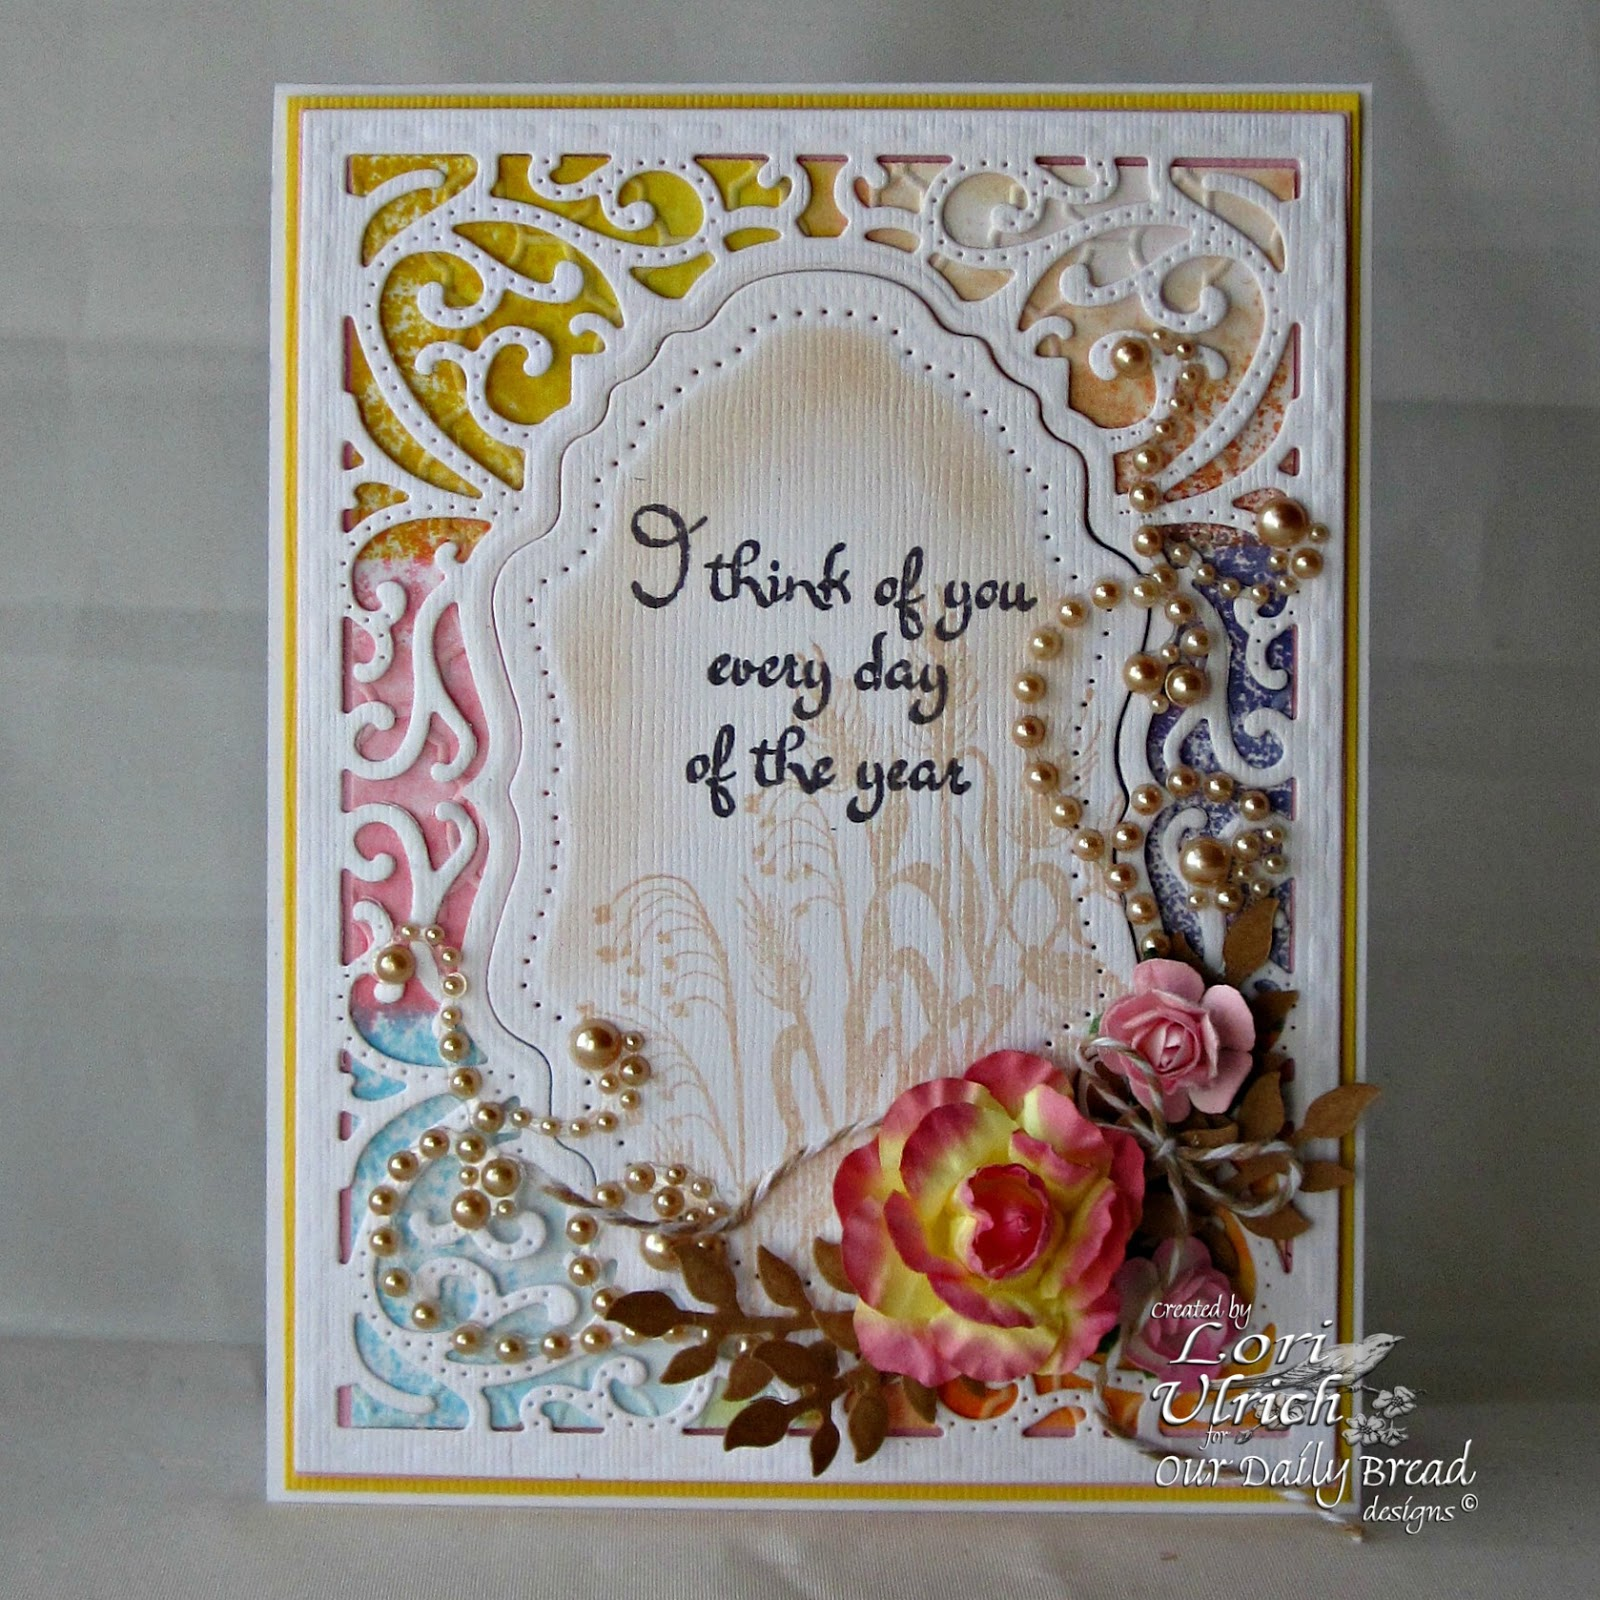 Stamps - Our Daily Bread Designs Miss You, ODBD Custom Vintage Flourish Pattern Dies, ODBD Custom Fancy Foliage Die